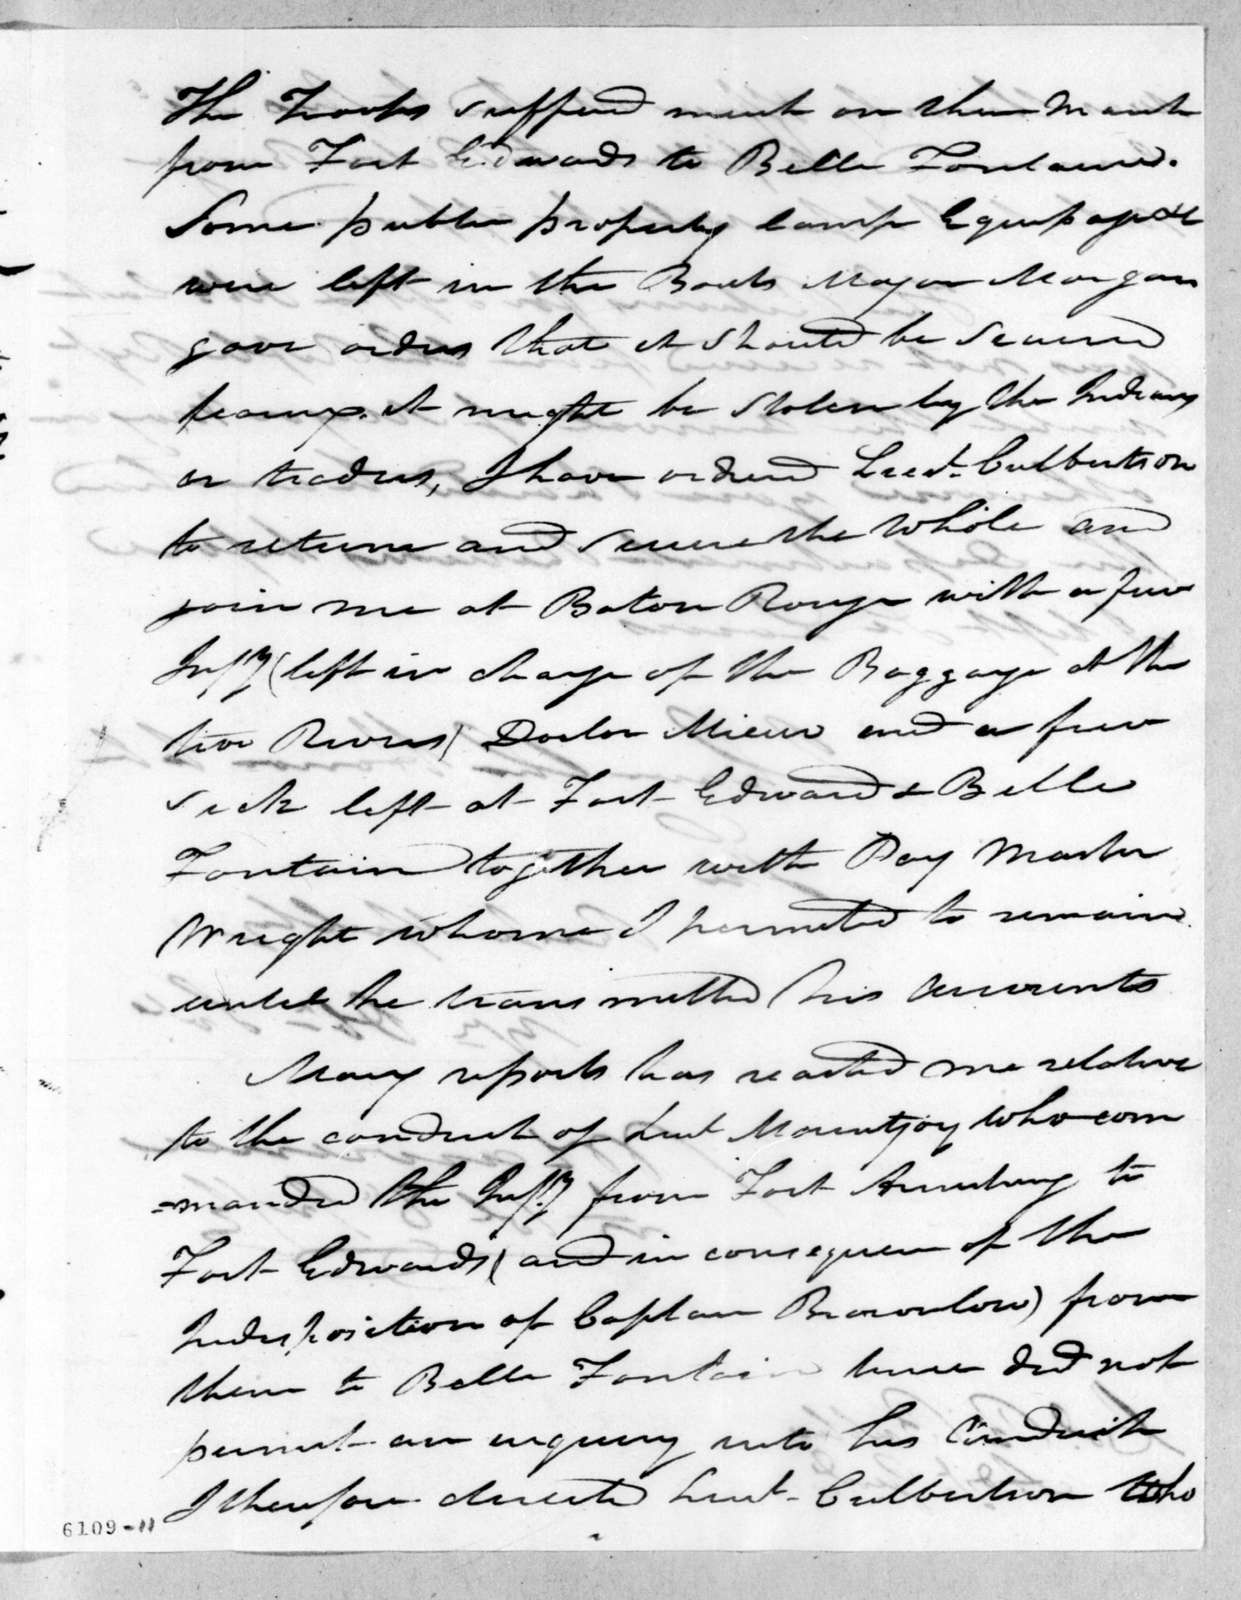 William Lawrence to Robert Butler, December 17, 1816